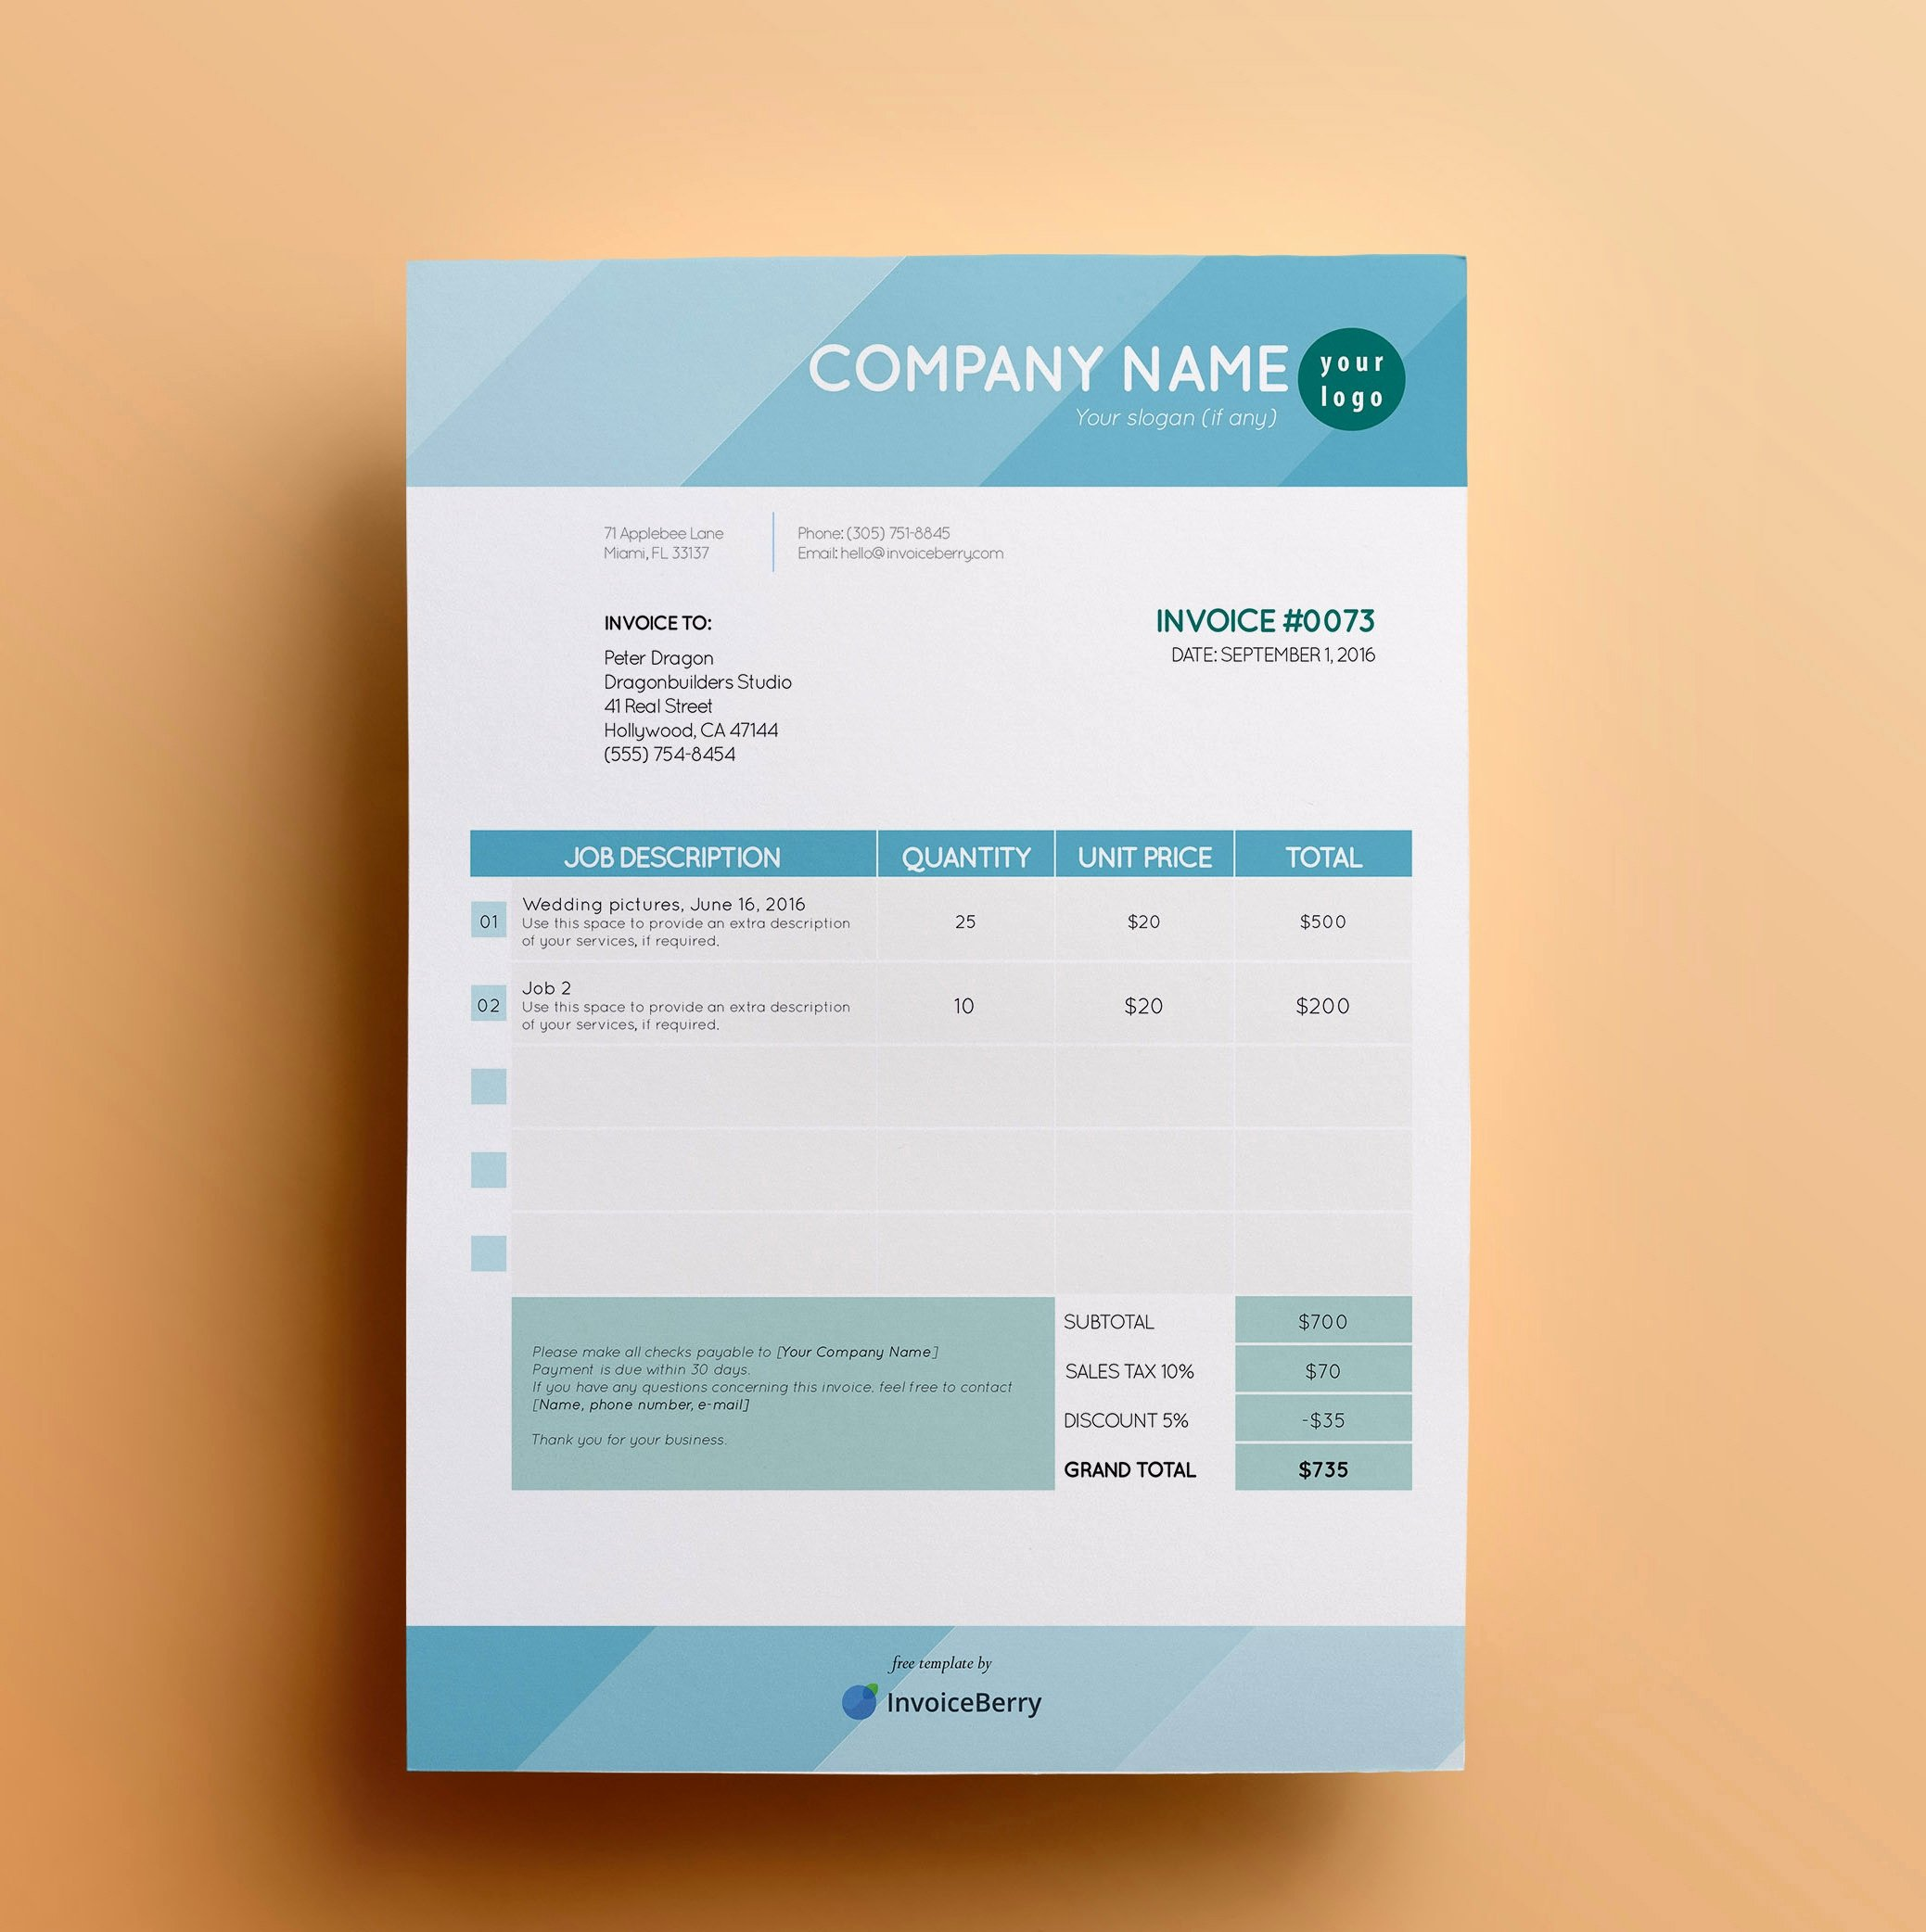 Free Indesign Invoice Template Awesome Free Invoice Indesign Template Free Invoice Indesign Ah